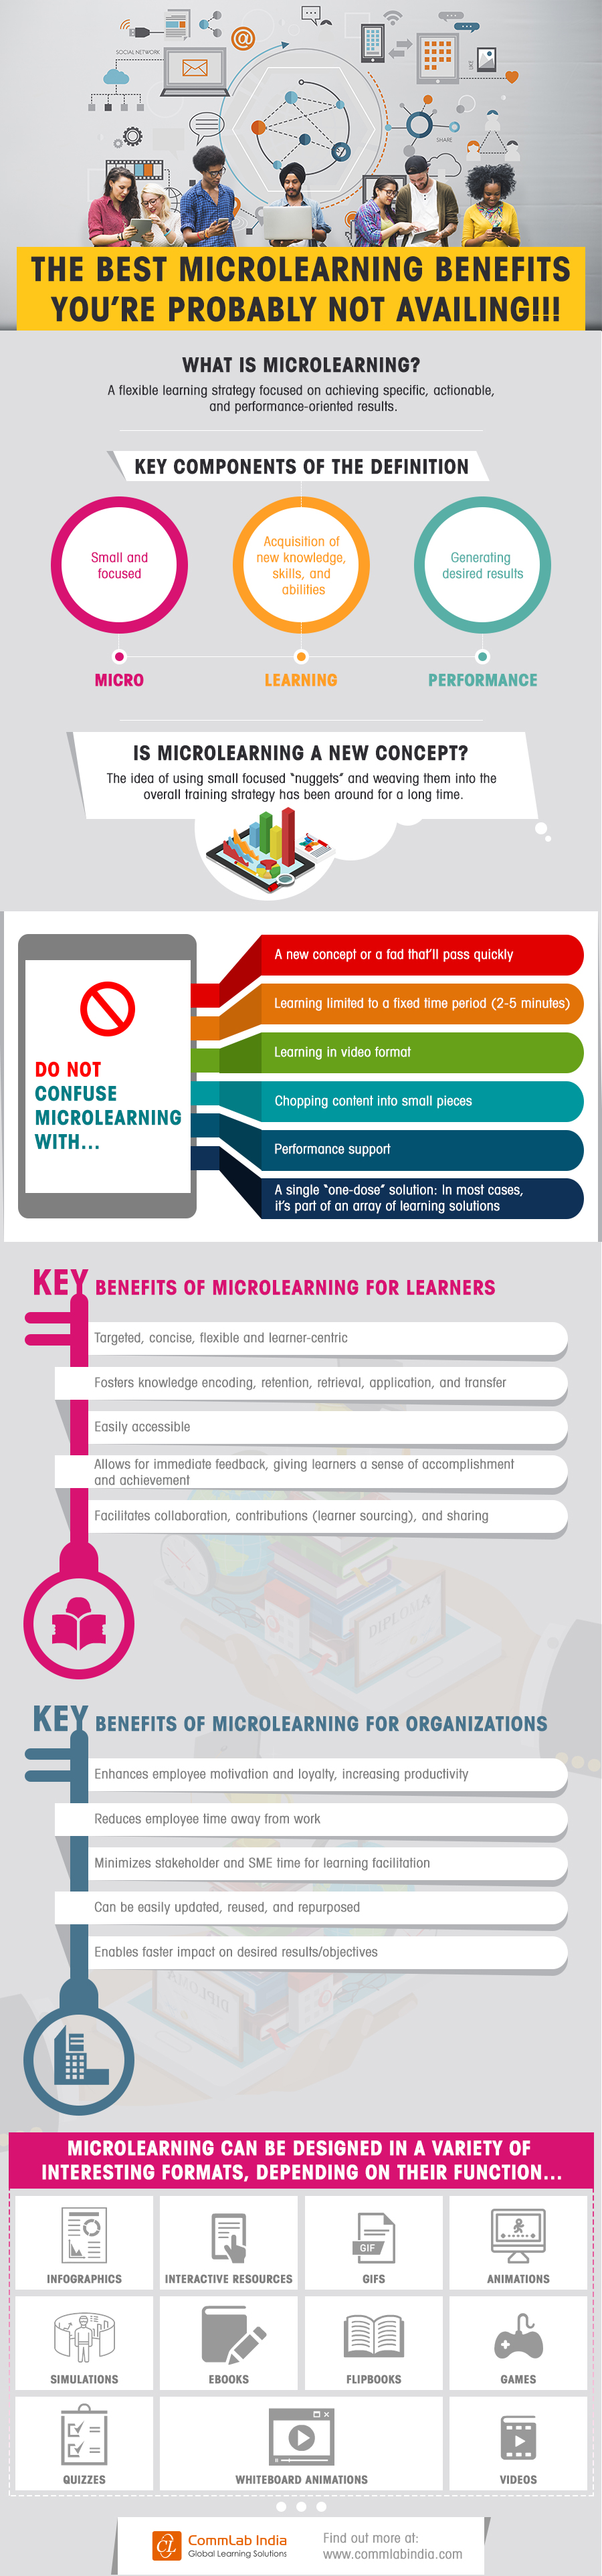 The Best Microlearning Benefits You're Probably Not Availing [Infographic]